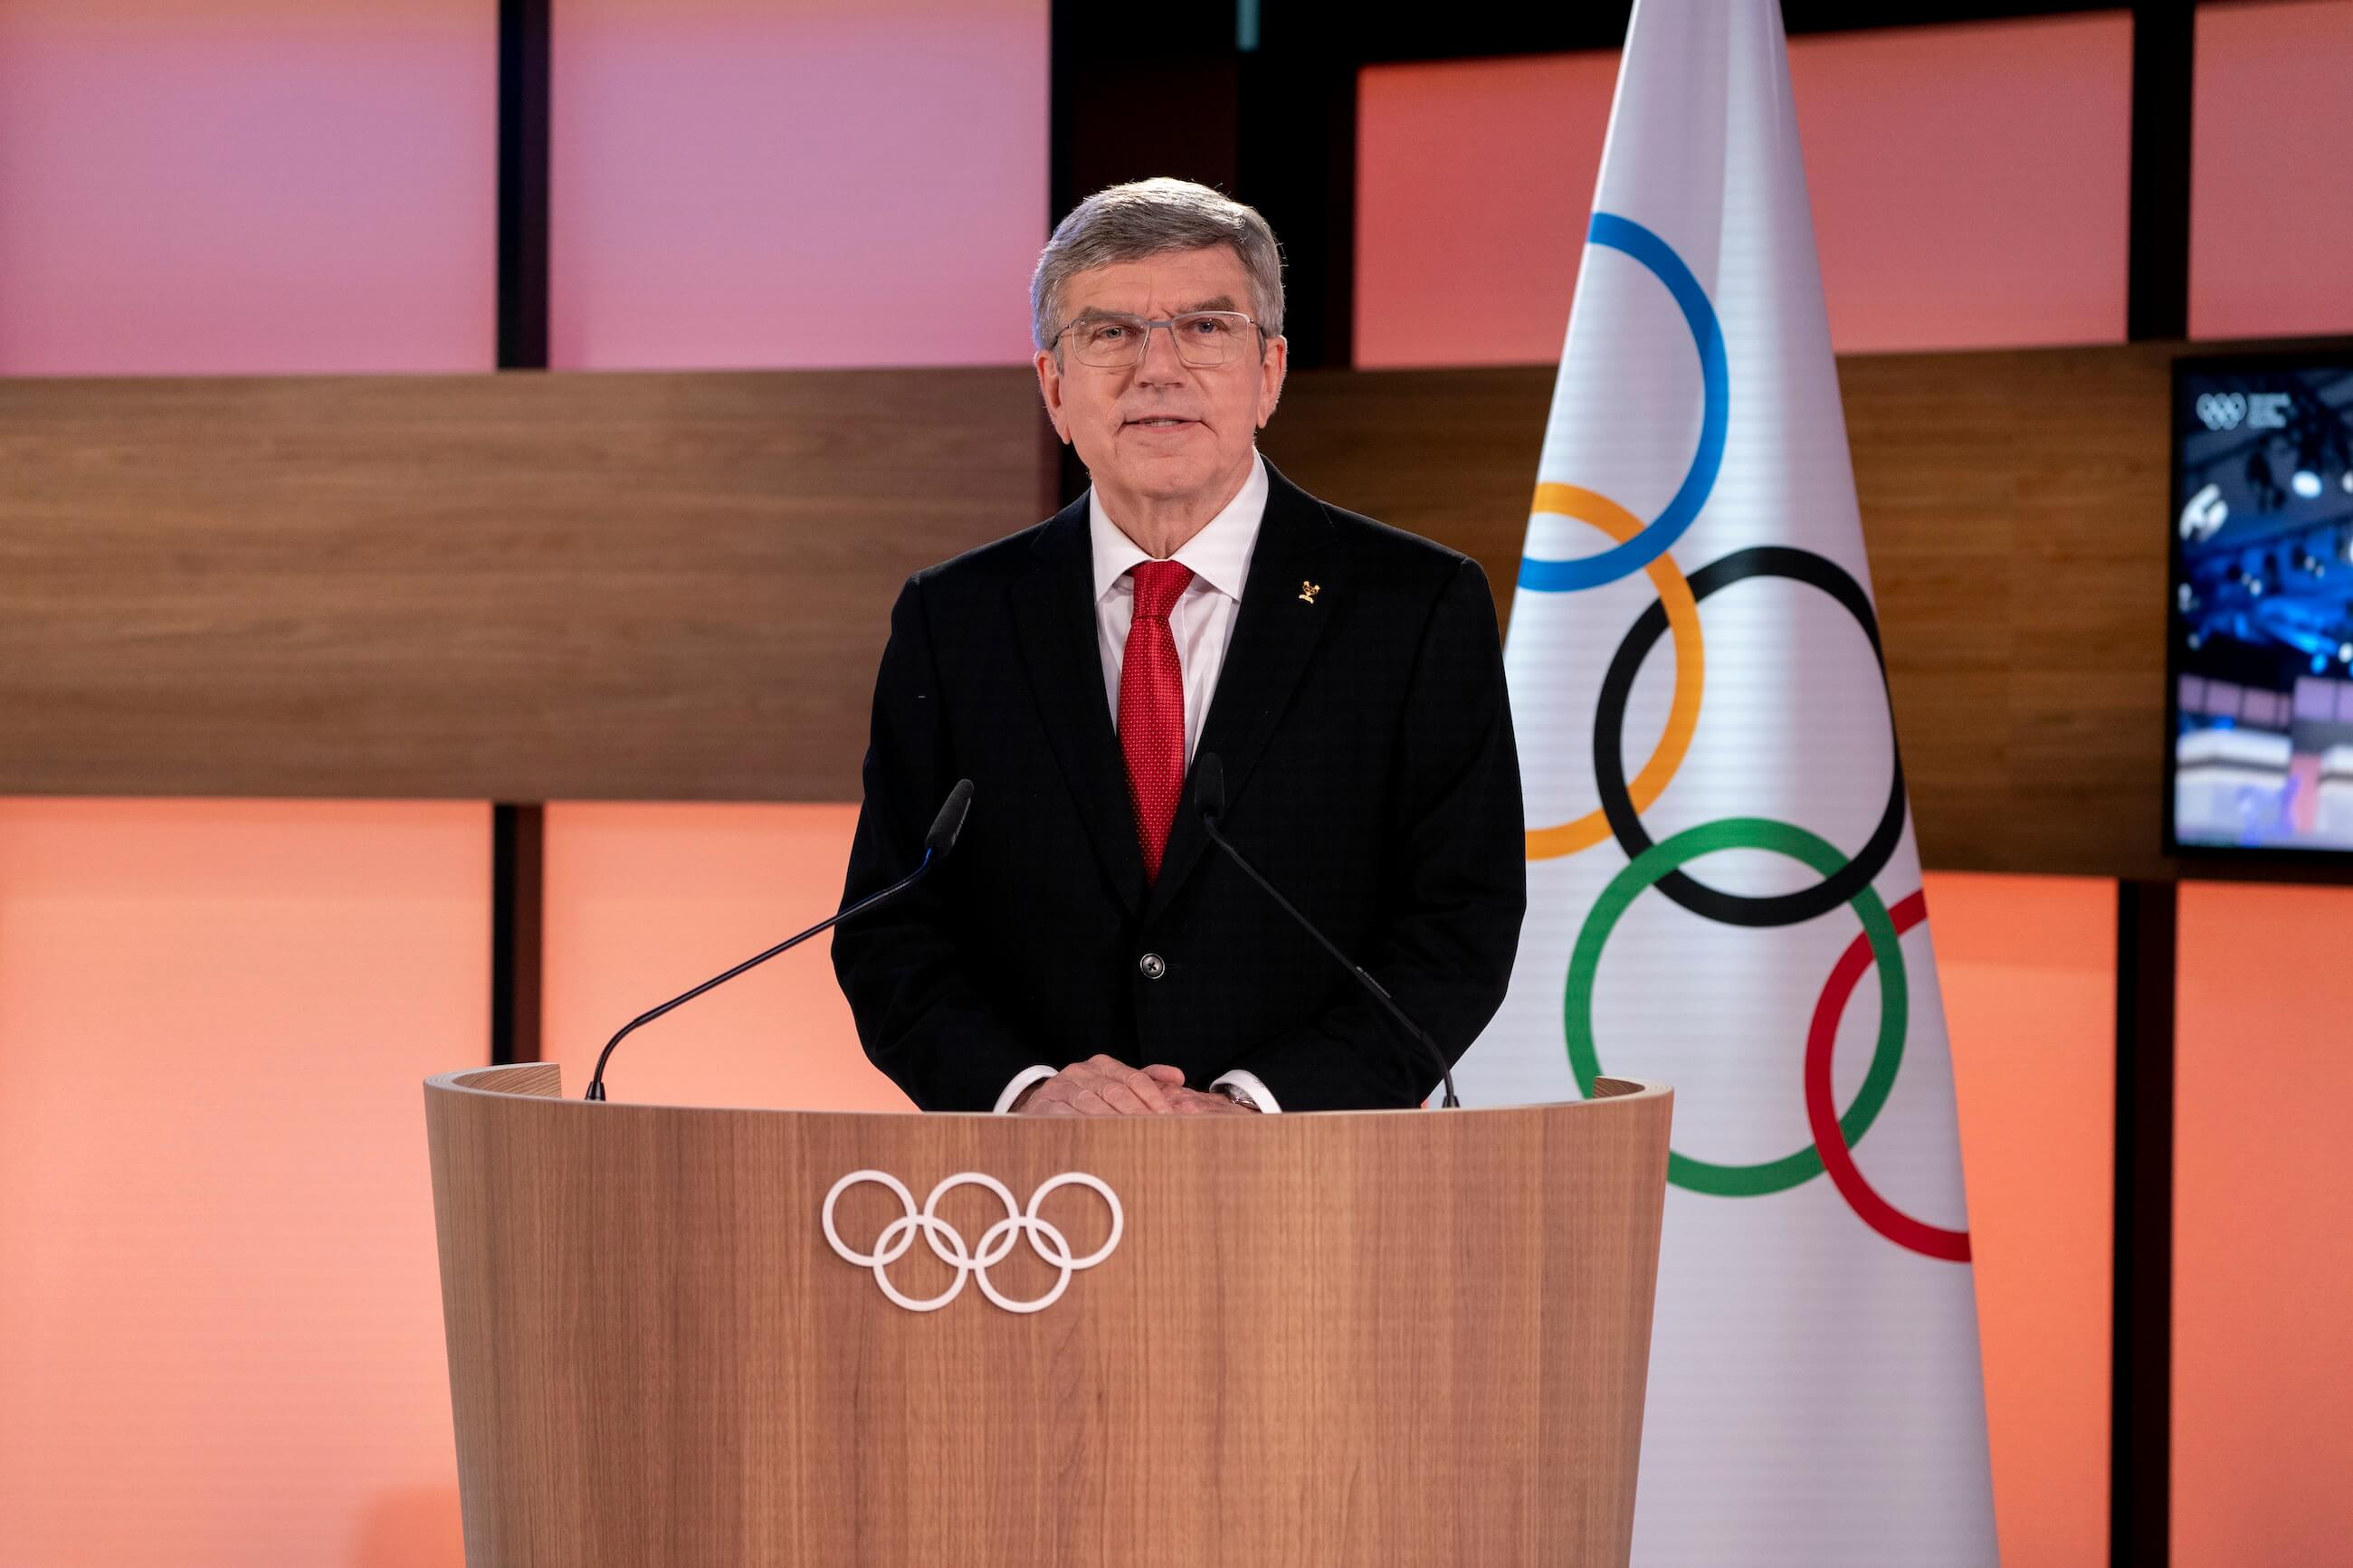 Thomas Bach re-elected International Olympic Committee President for second term